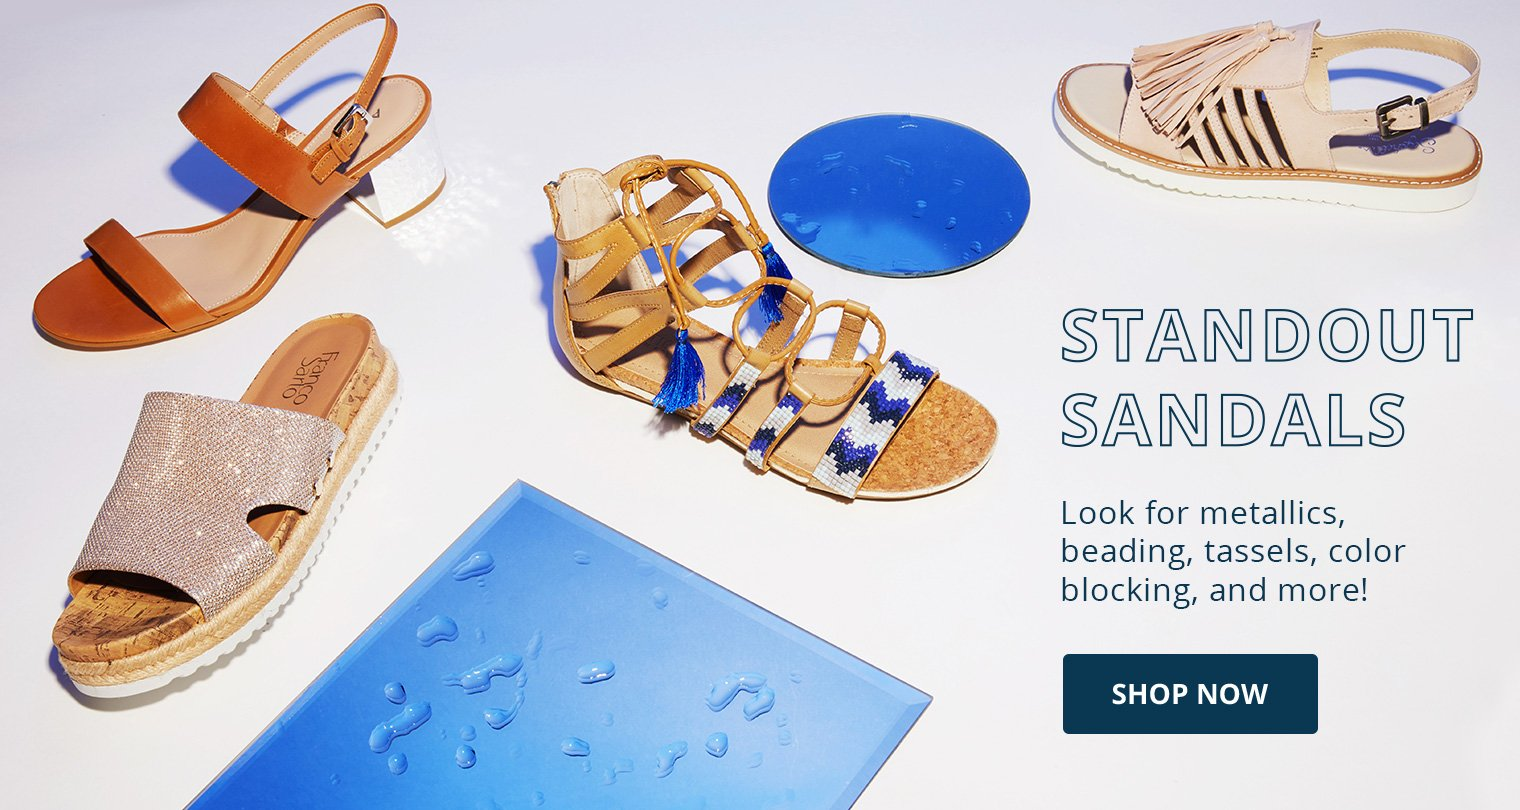 Standout Sandals. Look for Metallics, beading, tassels and more. Shop Now.